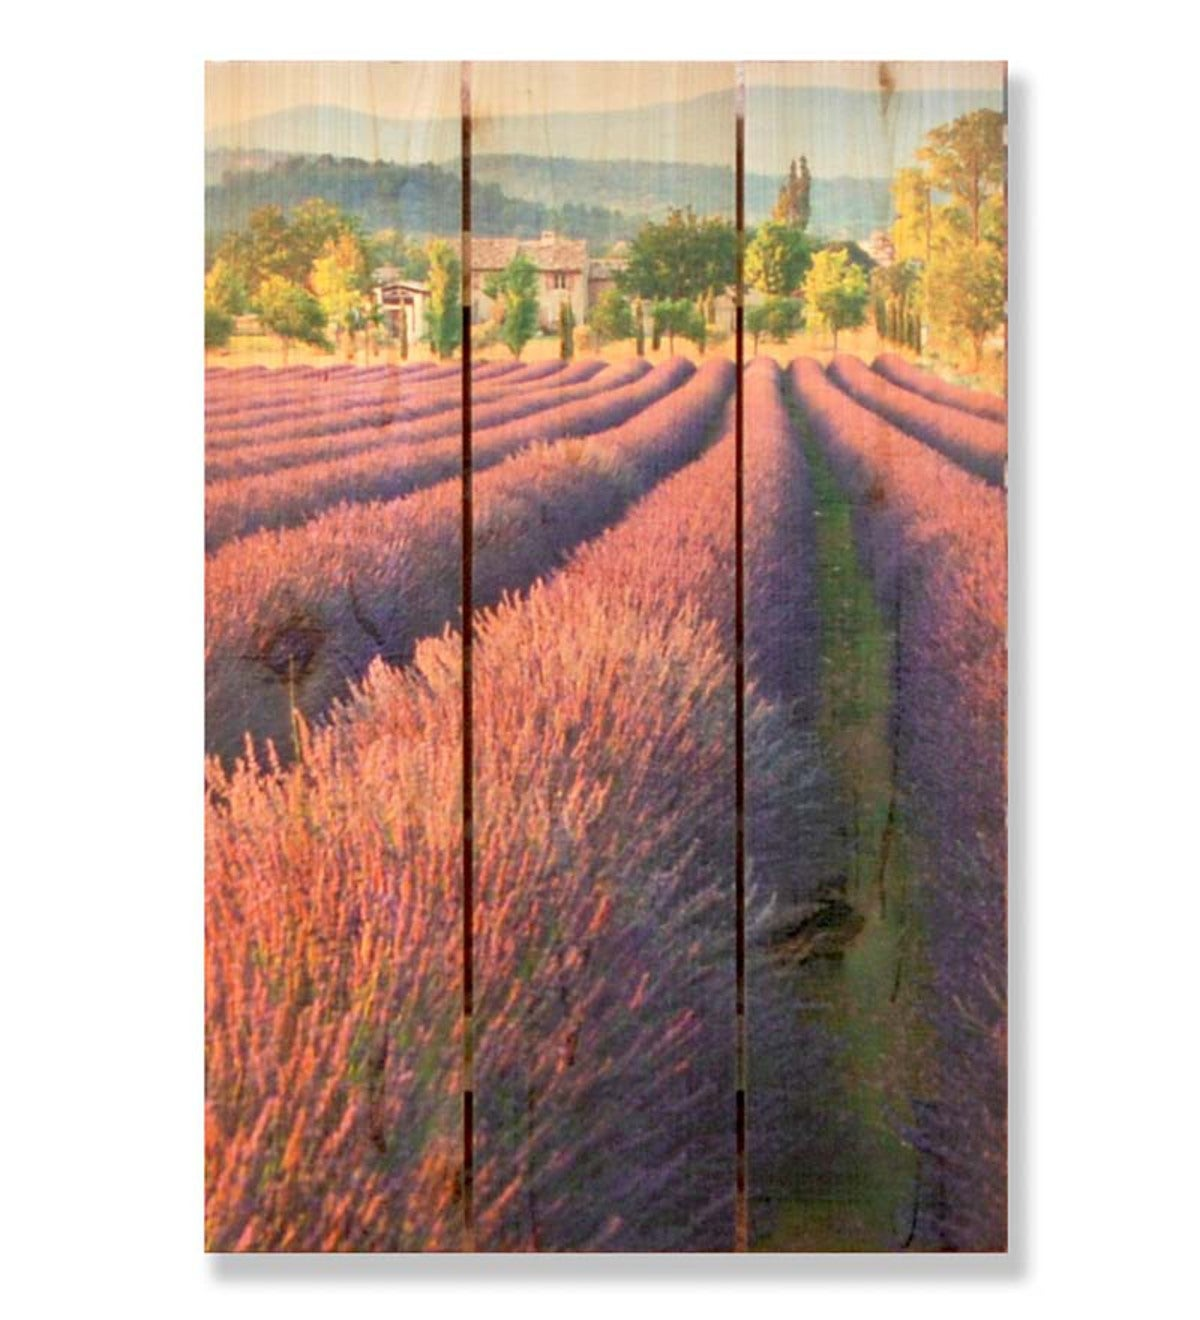 Handcrafted French Lavender Wooden Wall Art by Gizaun Art™